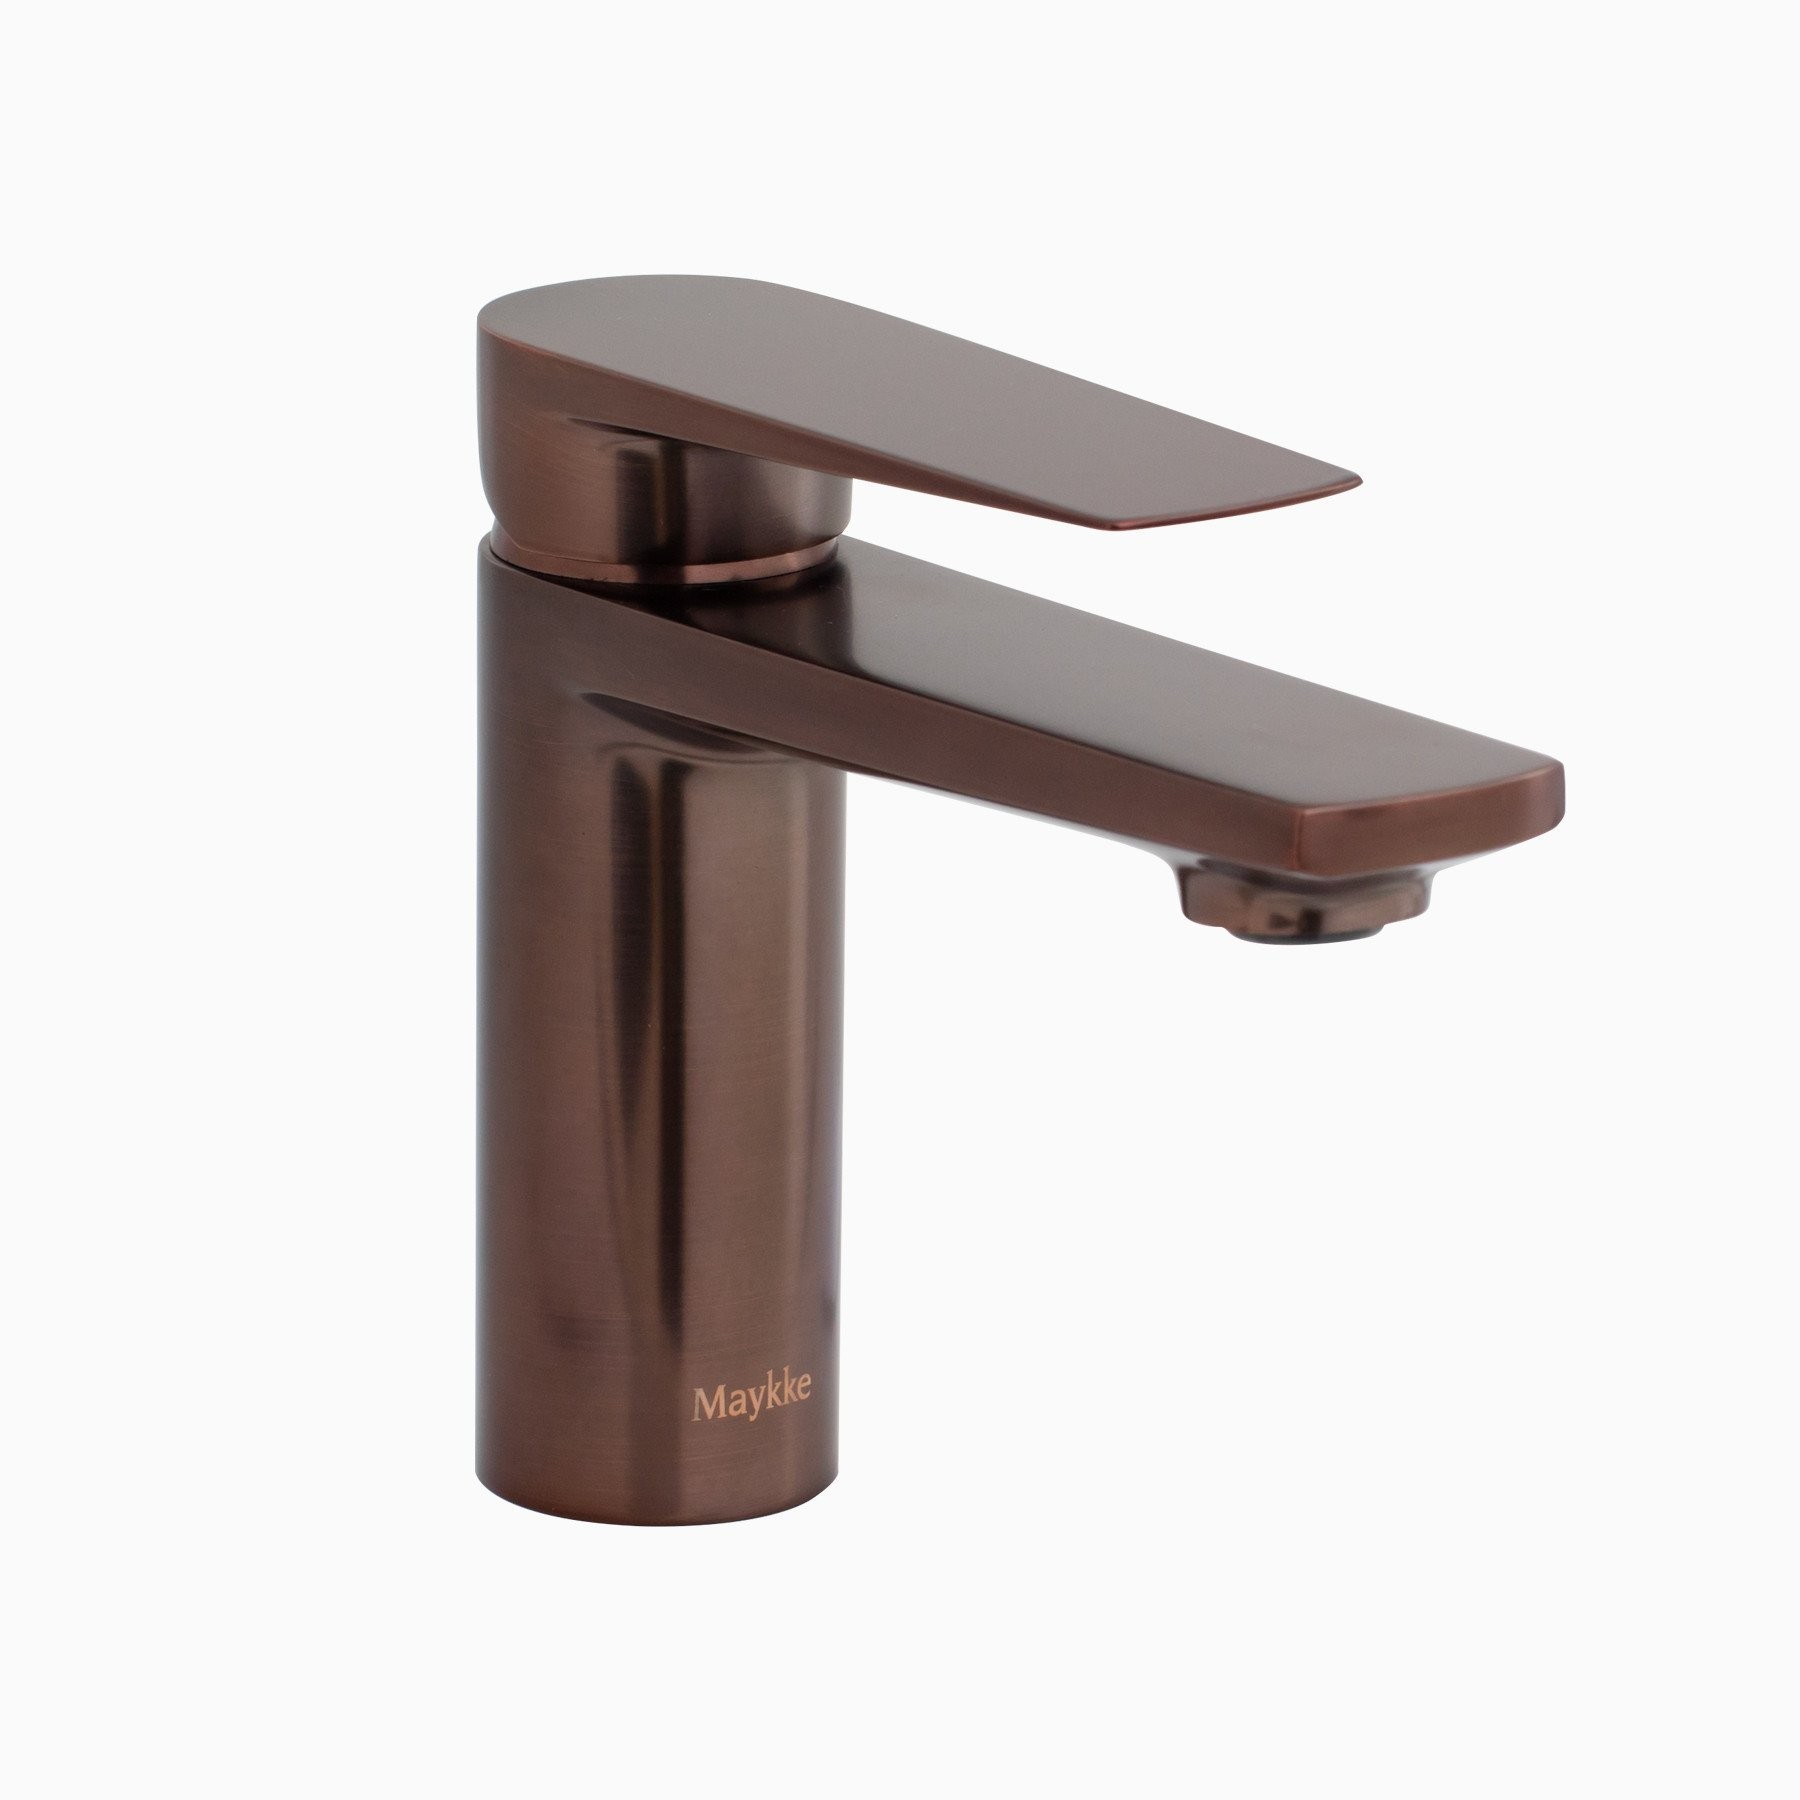 Adalbert Brass Bathroom Sink Faucet, Oil-Rubbed Bronze, Single Hole ...